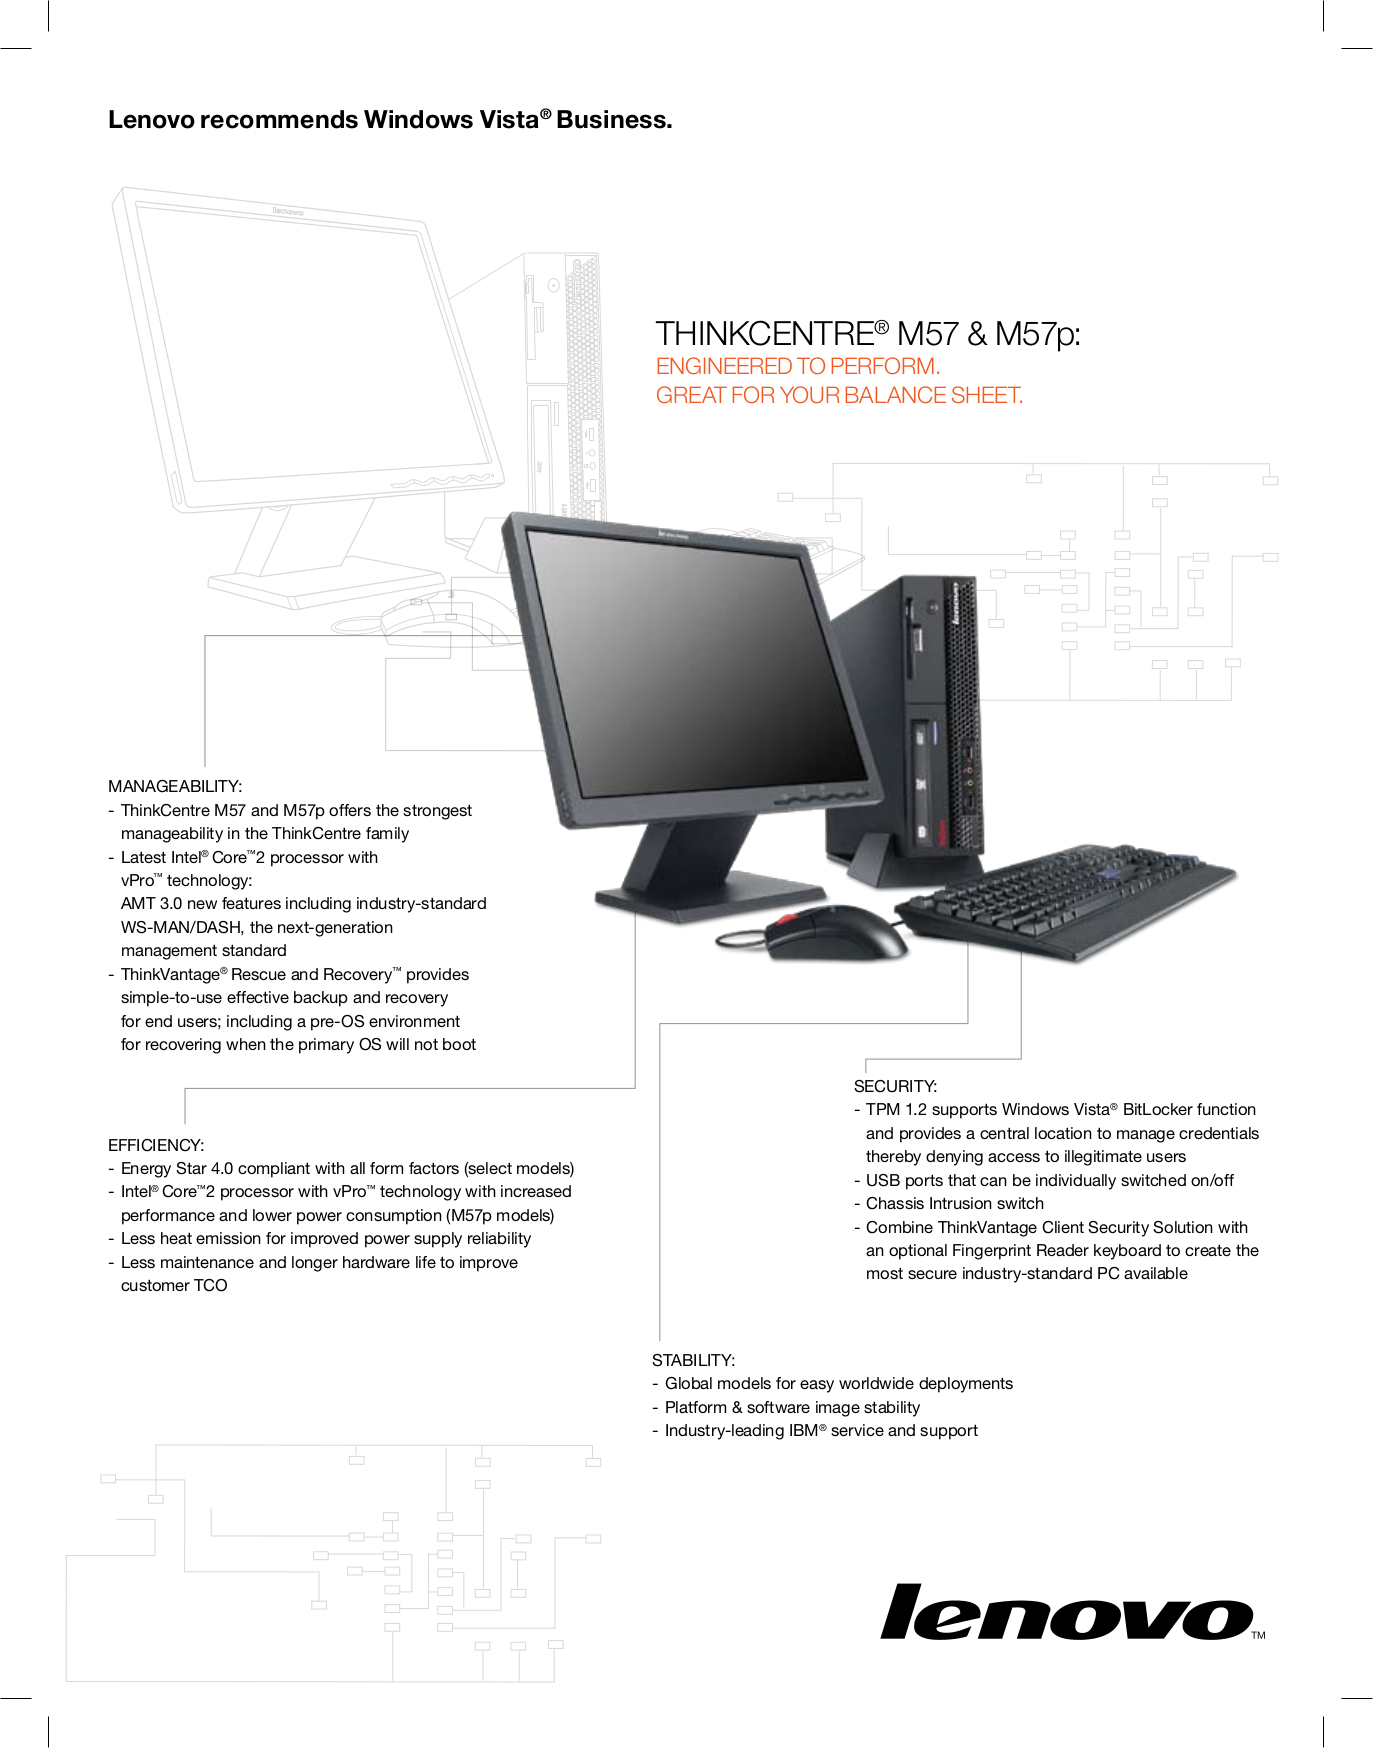 pdf for Lenovo Desktop ThinkCentre M57p 9326 manual